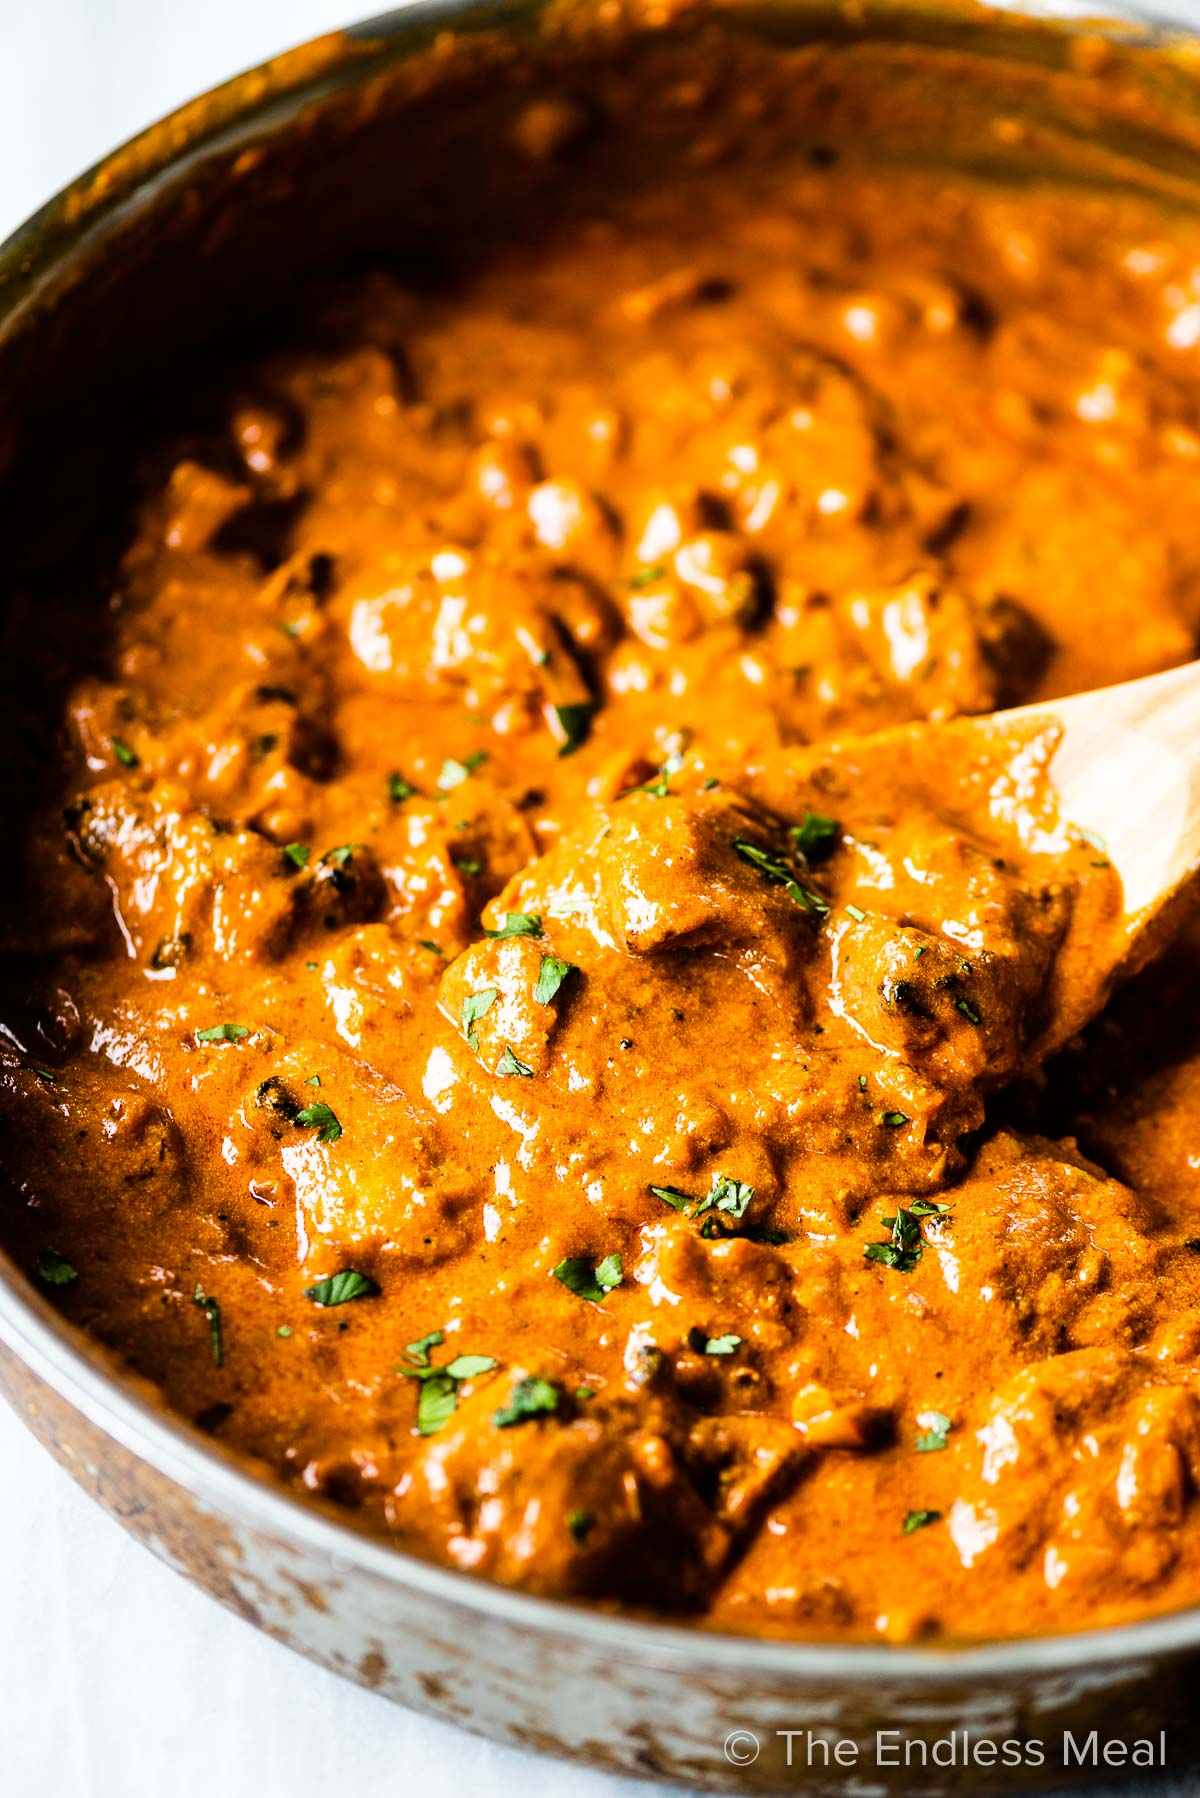 This chicken tikka masala recipe in a pan with a wooden spoon.